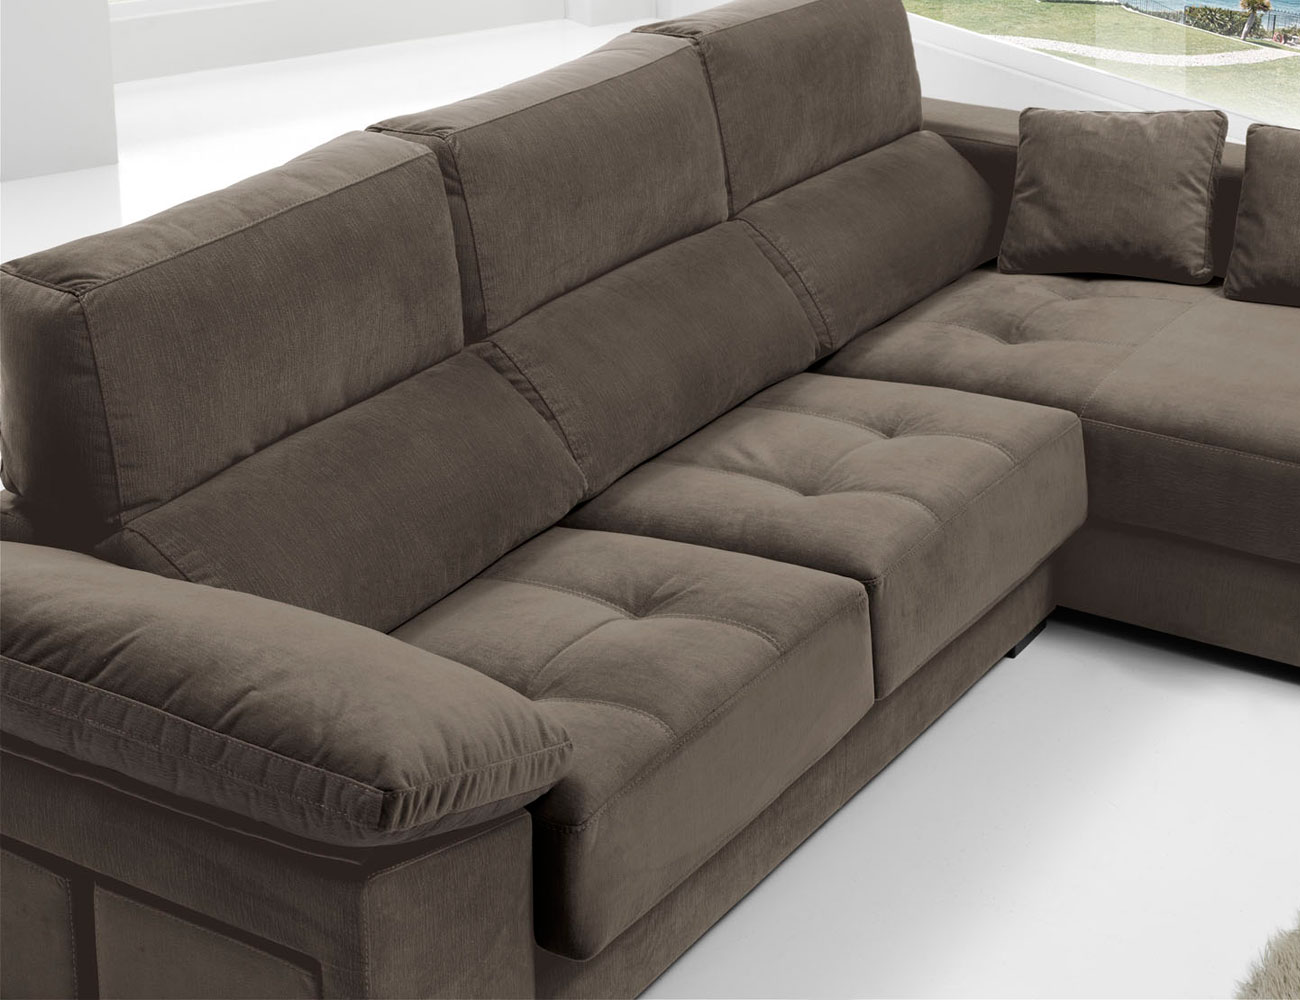 Sofa chaiselongue anti manchas bering pouf 252